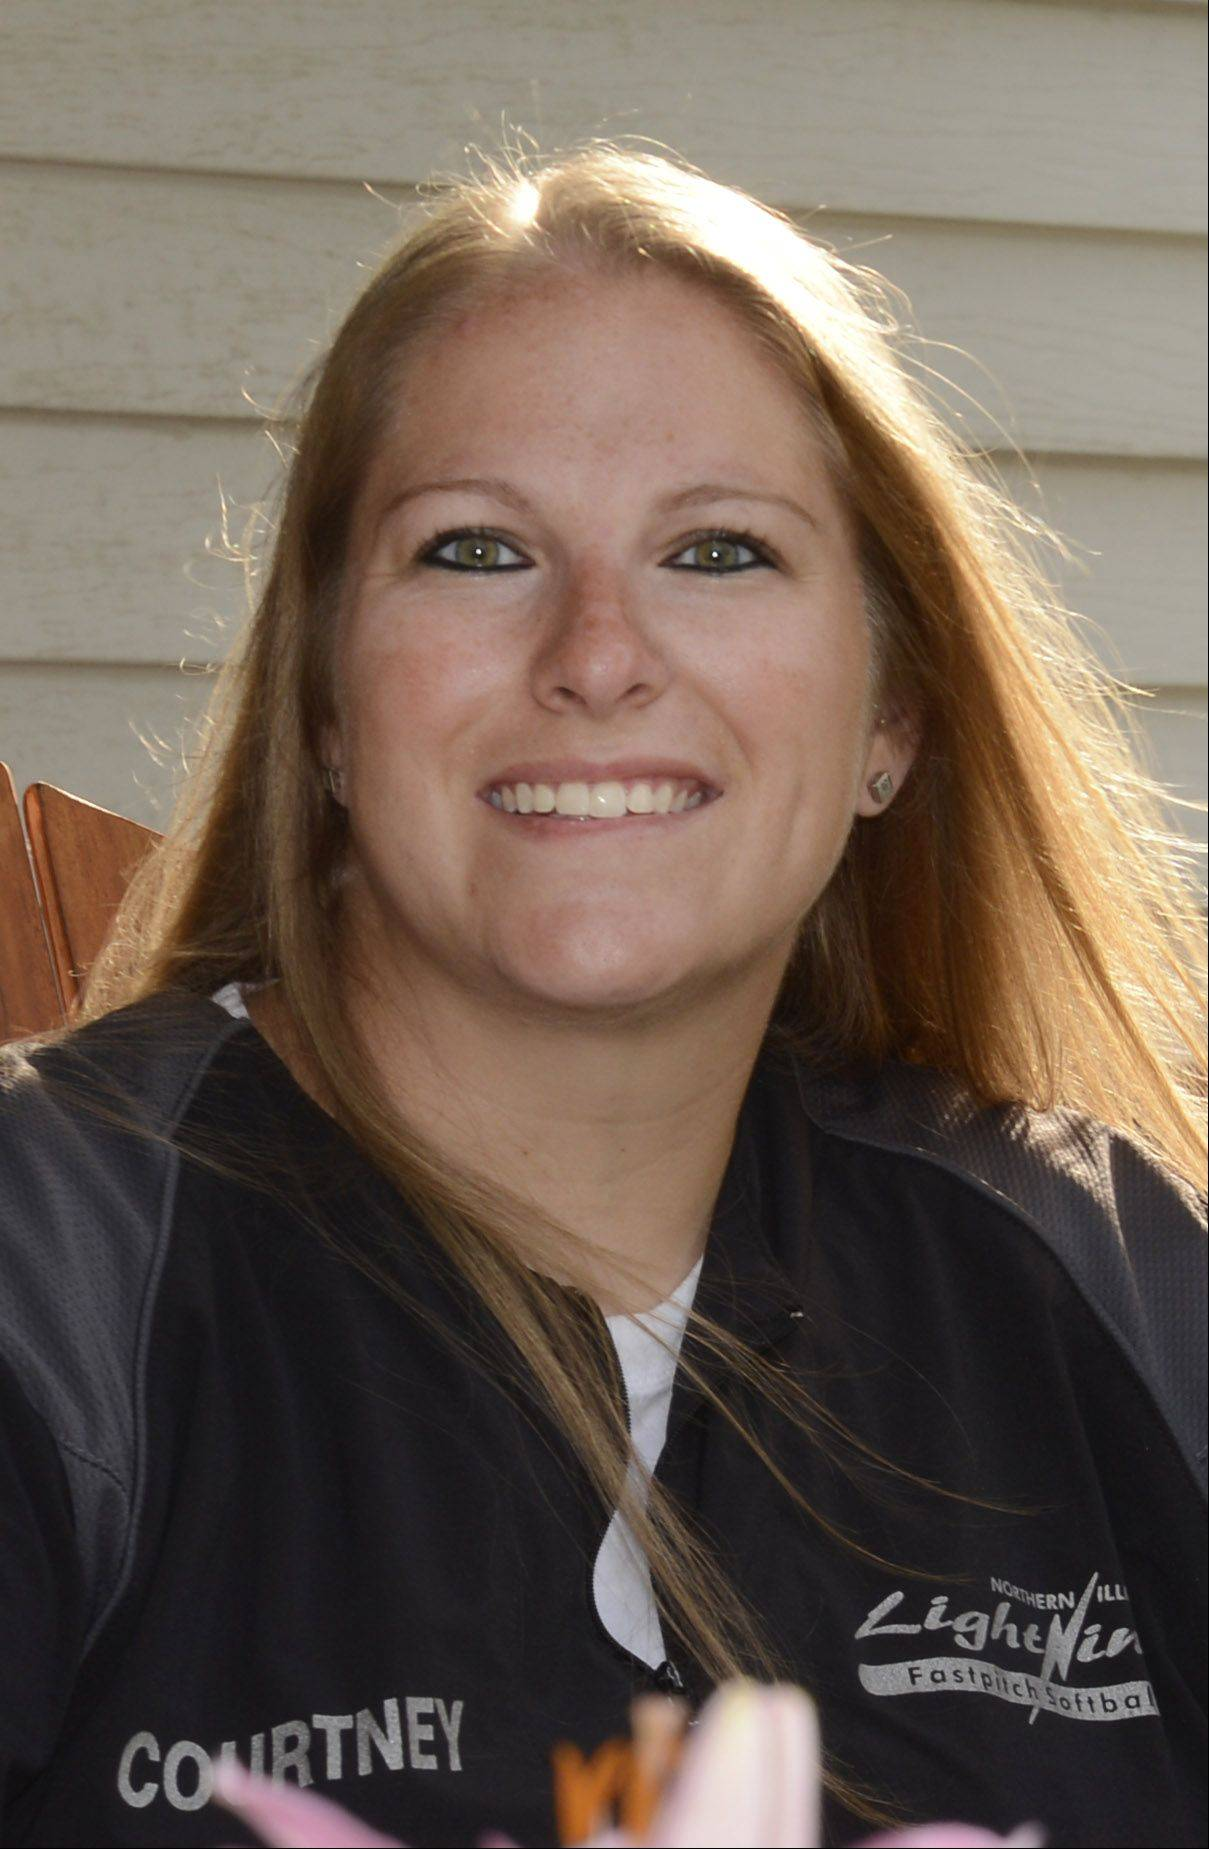 Courtney LaFerle is an Elgin native and Larkin High School graduate who was diagnosed with thyroid cancer last month. She continues to coach softball for the Northern Illinois Lightning Fastpitch Softball league. The softball community has rallied to help with her medical bills as she readies for surgery.